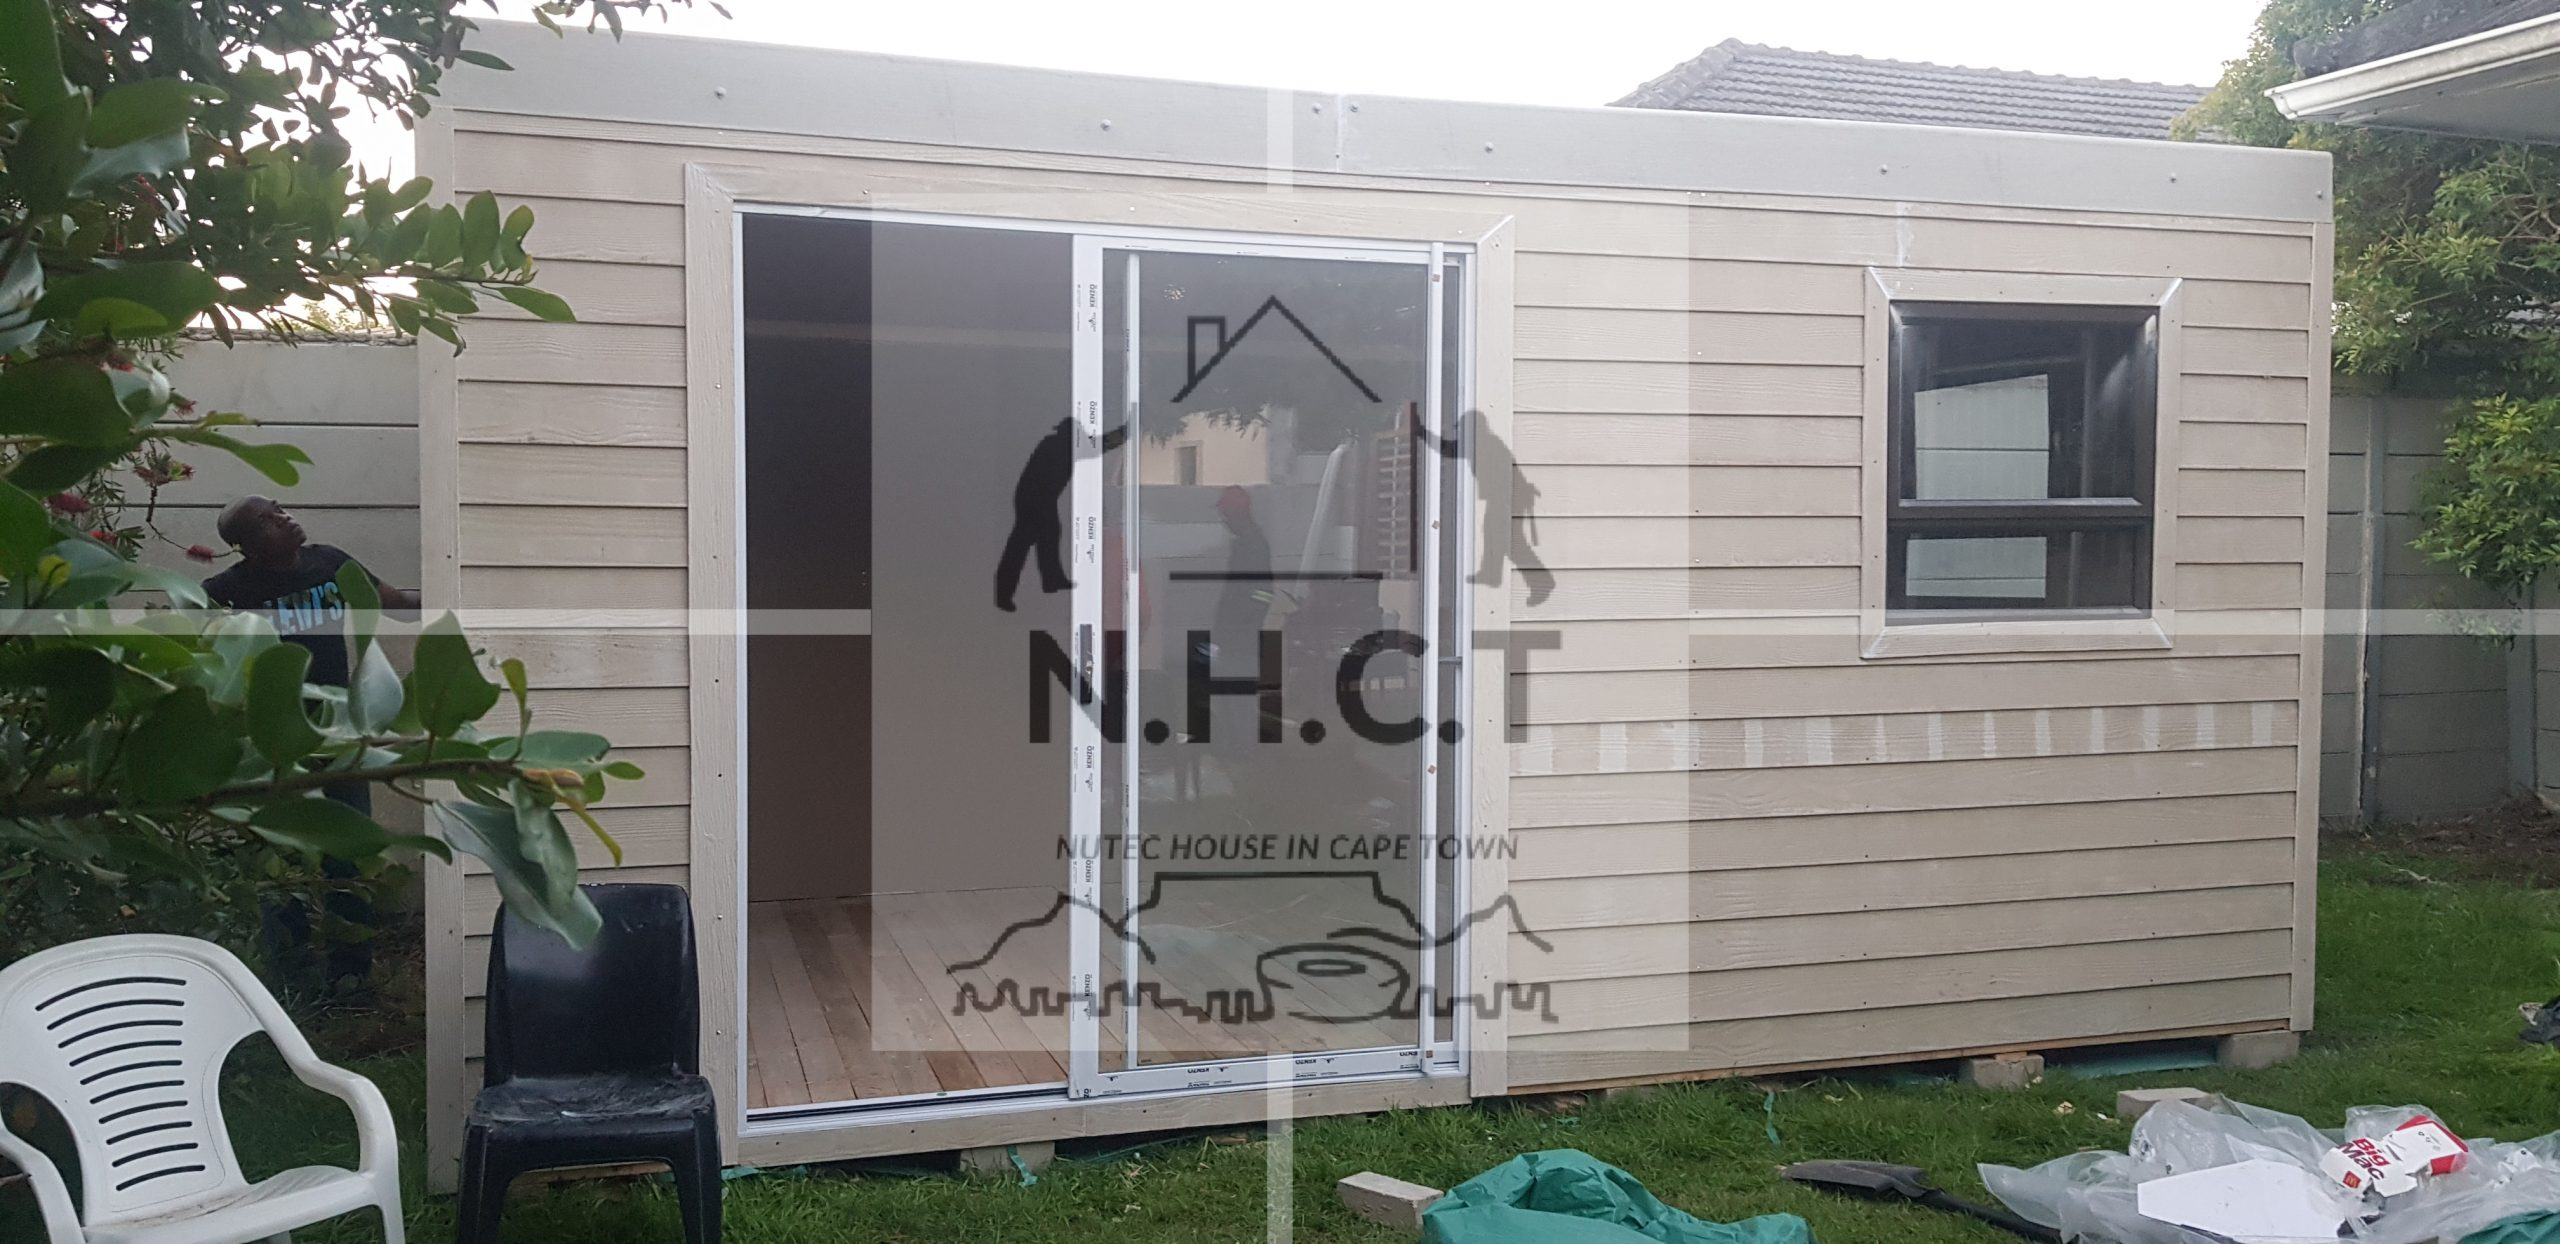 Nutec houses at an affordable price